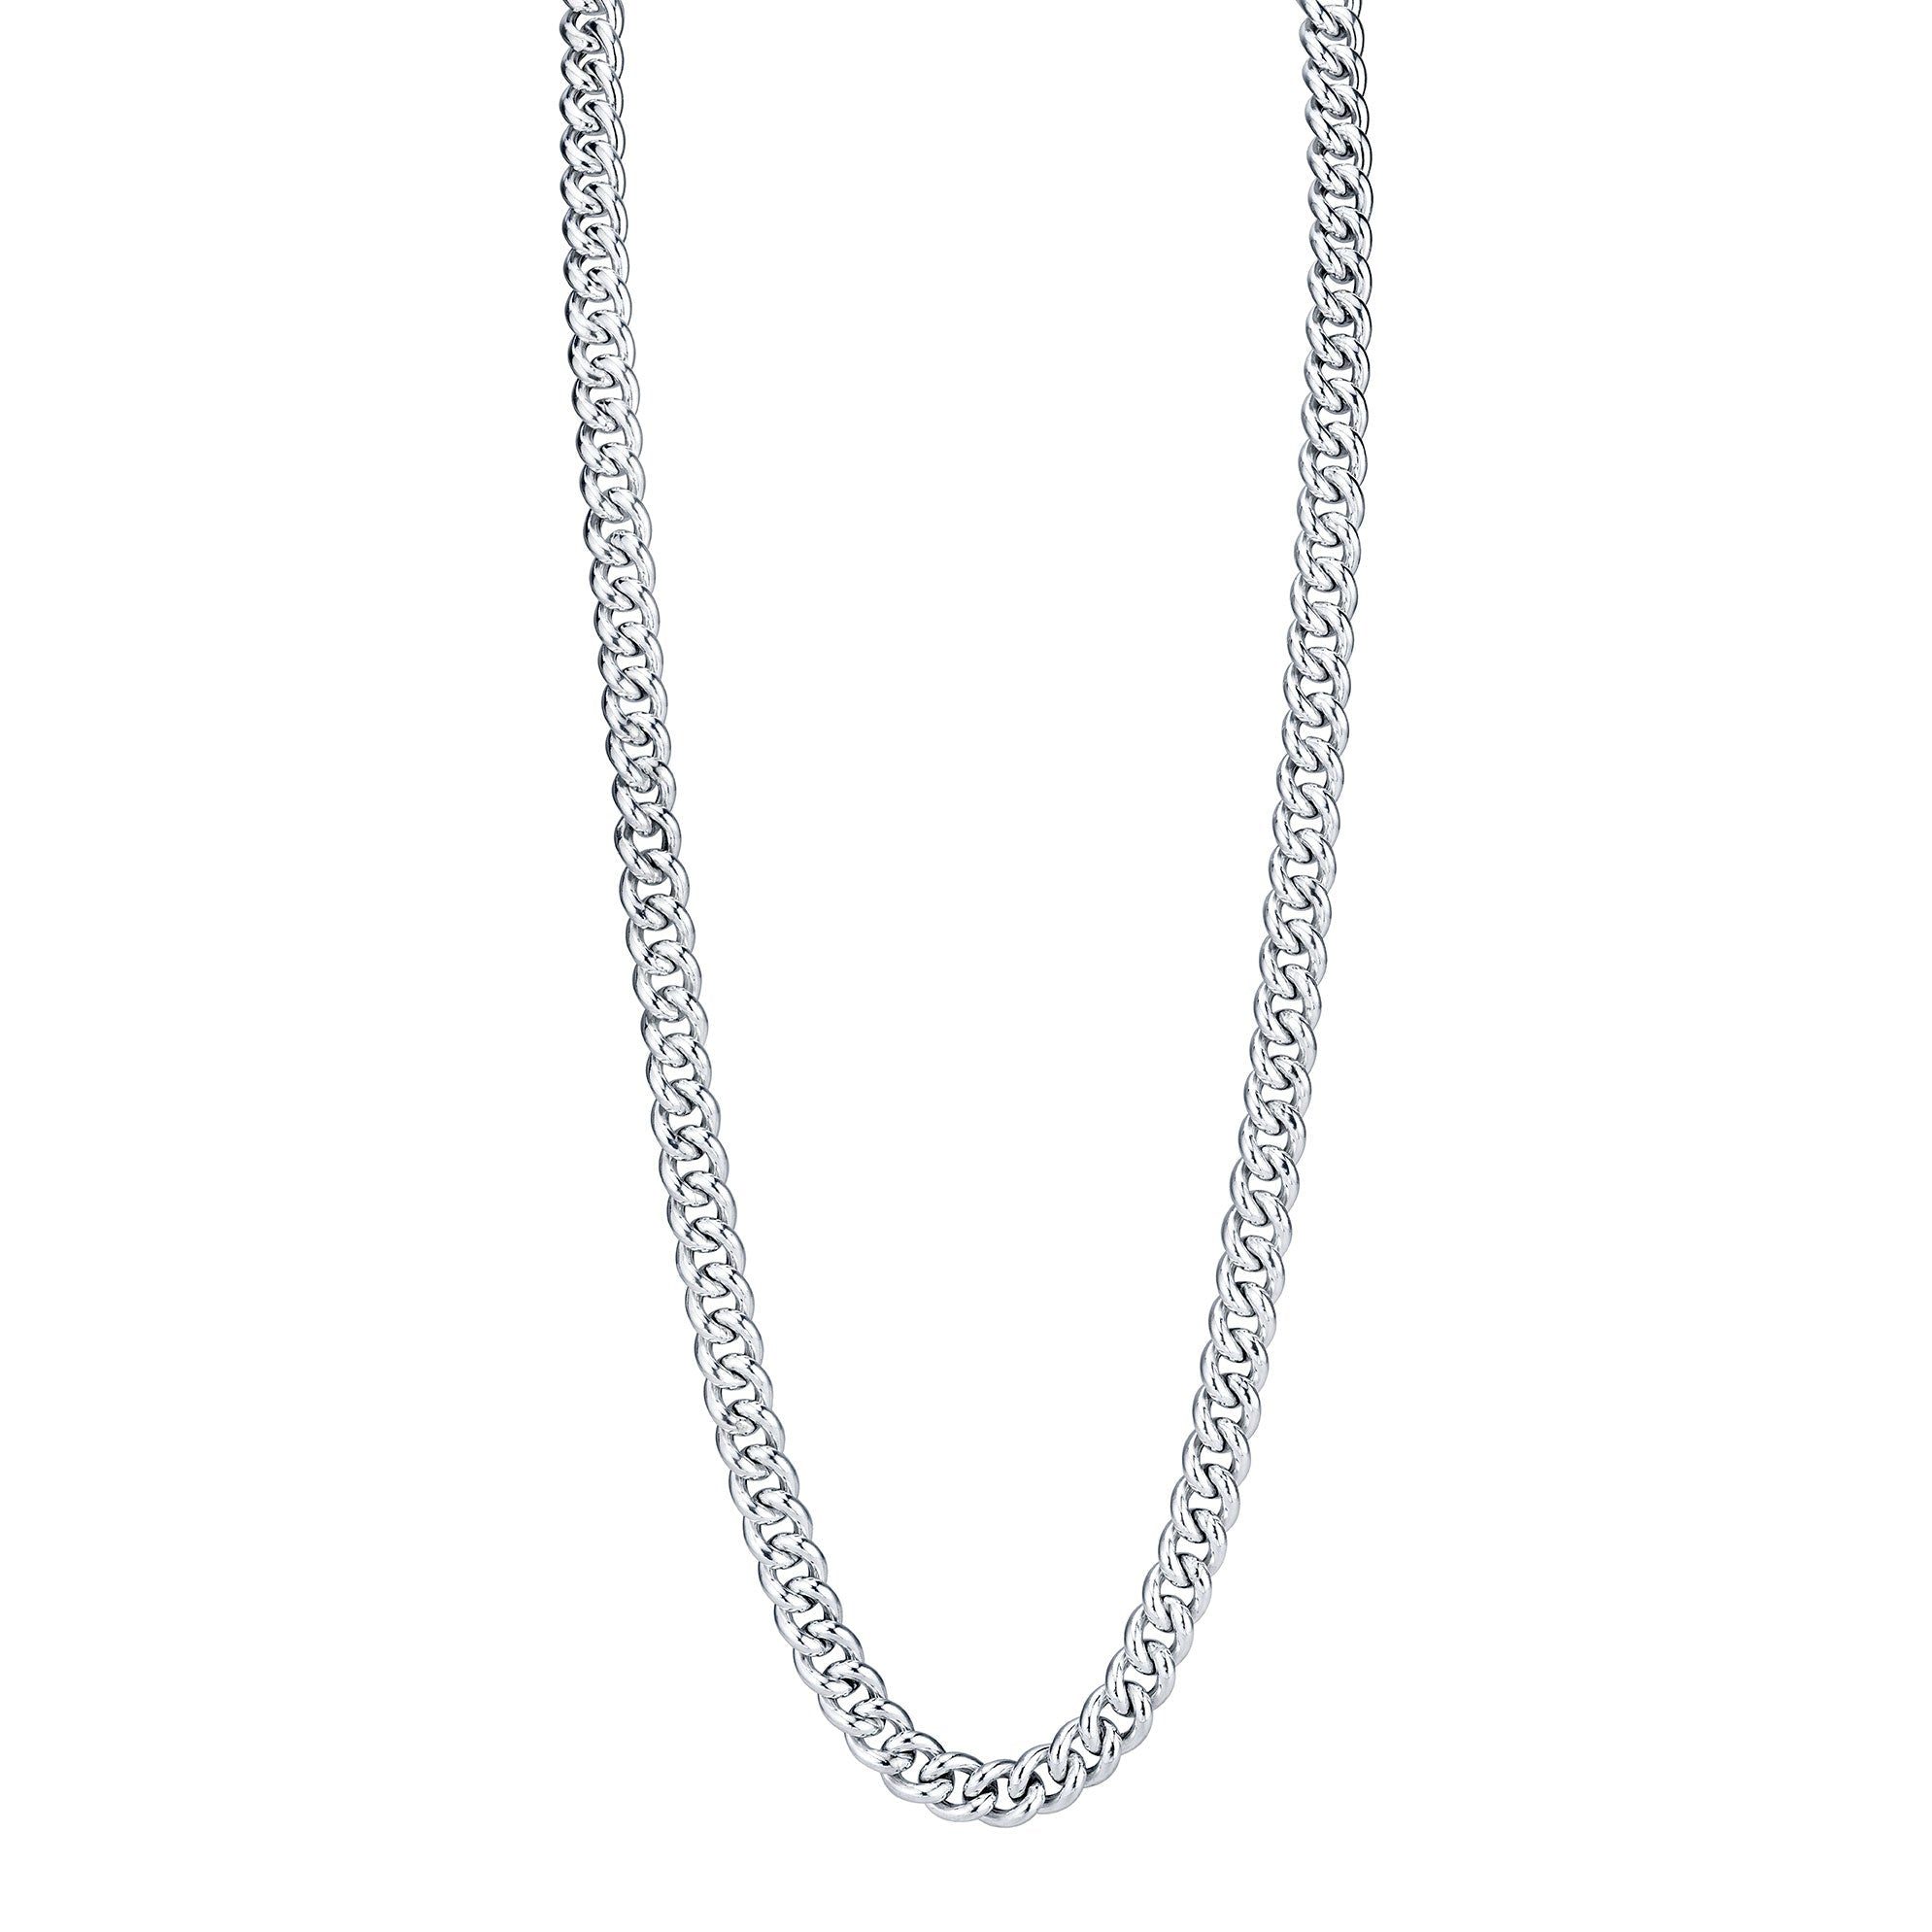 Thin Palma Neck Chain - Gabriela Artigas